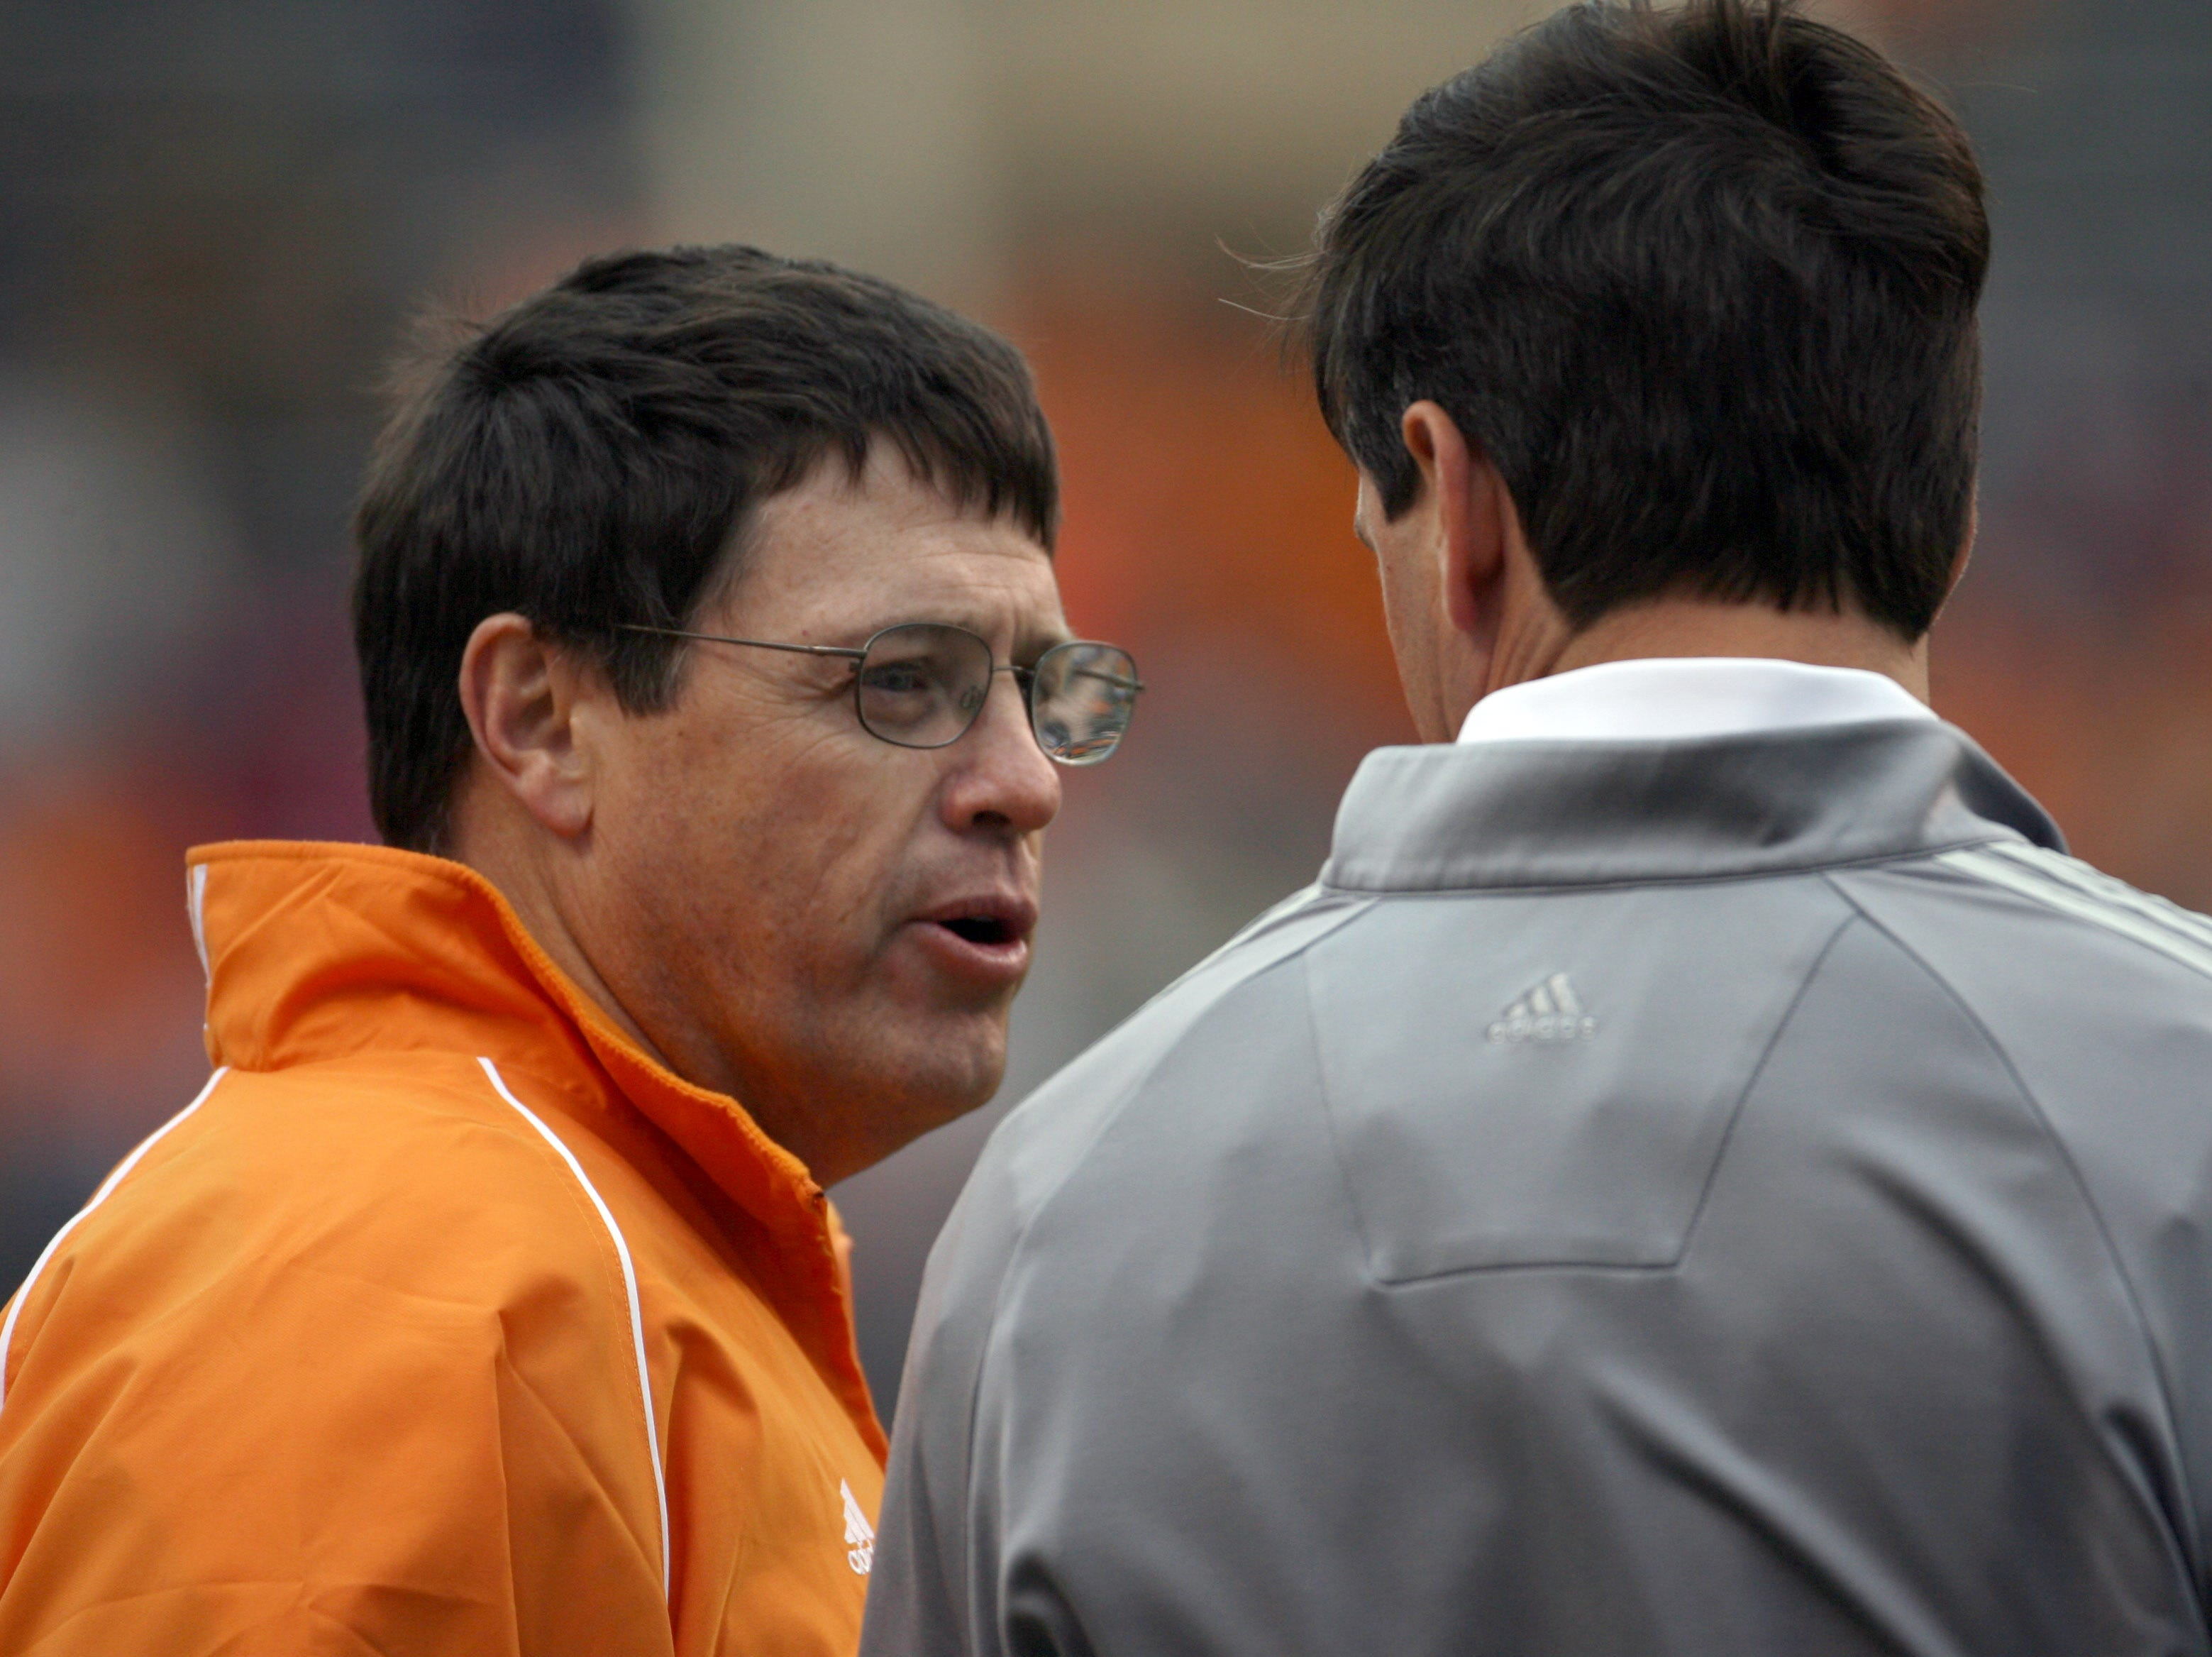 Tennessee offensive coordinator Jim Chaney, left, talks with head coach Derek Dooley during the Orange and White game at Neyland Stadium Saturday, April 16, 2011.  White won the game 24-7 over Orange.